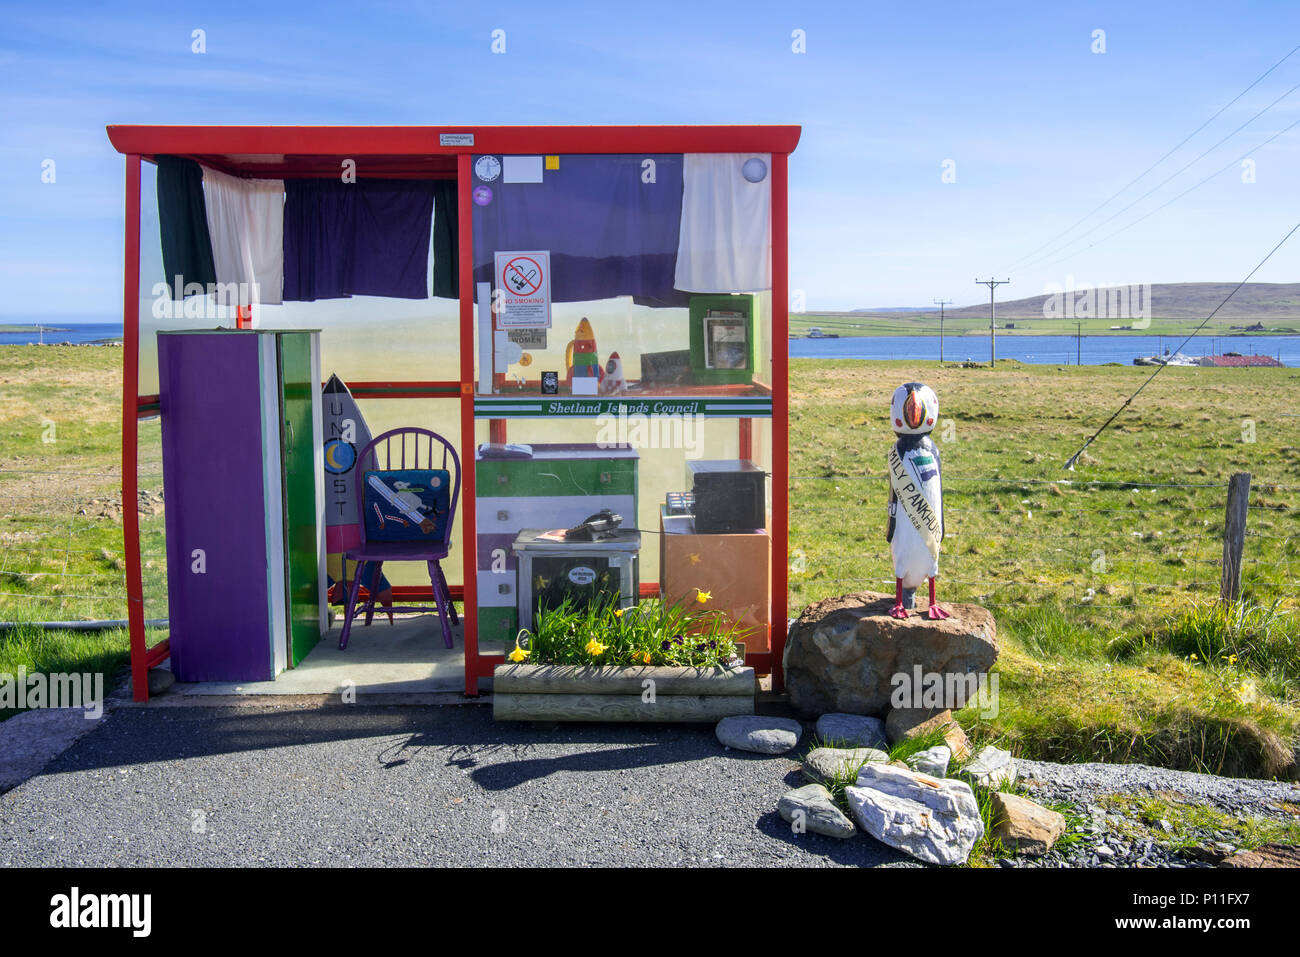 Amusing bus stop shelter furnished and decorated with home comforts near Baltasound, Unst, Shetland Islands, Scotland, UK - Stock Image